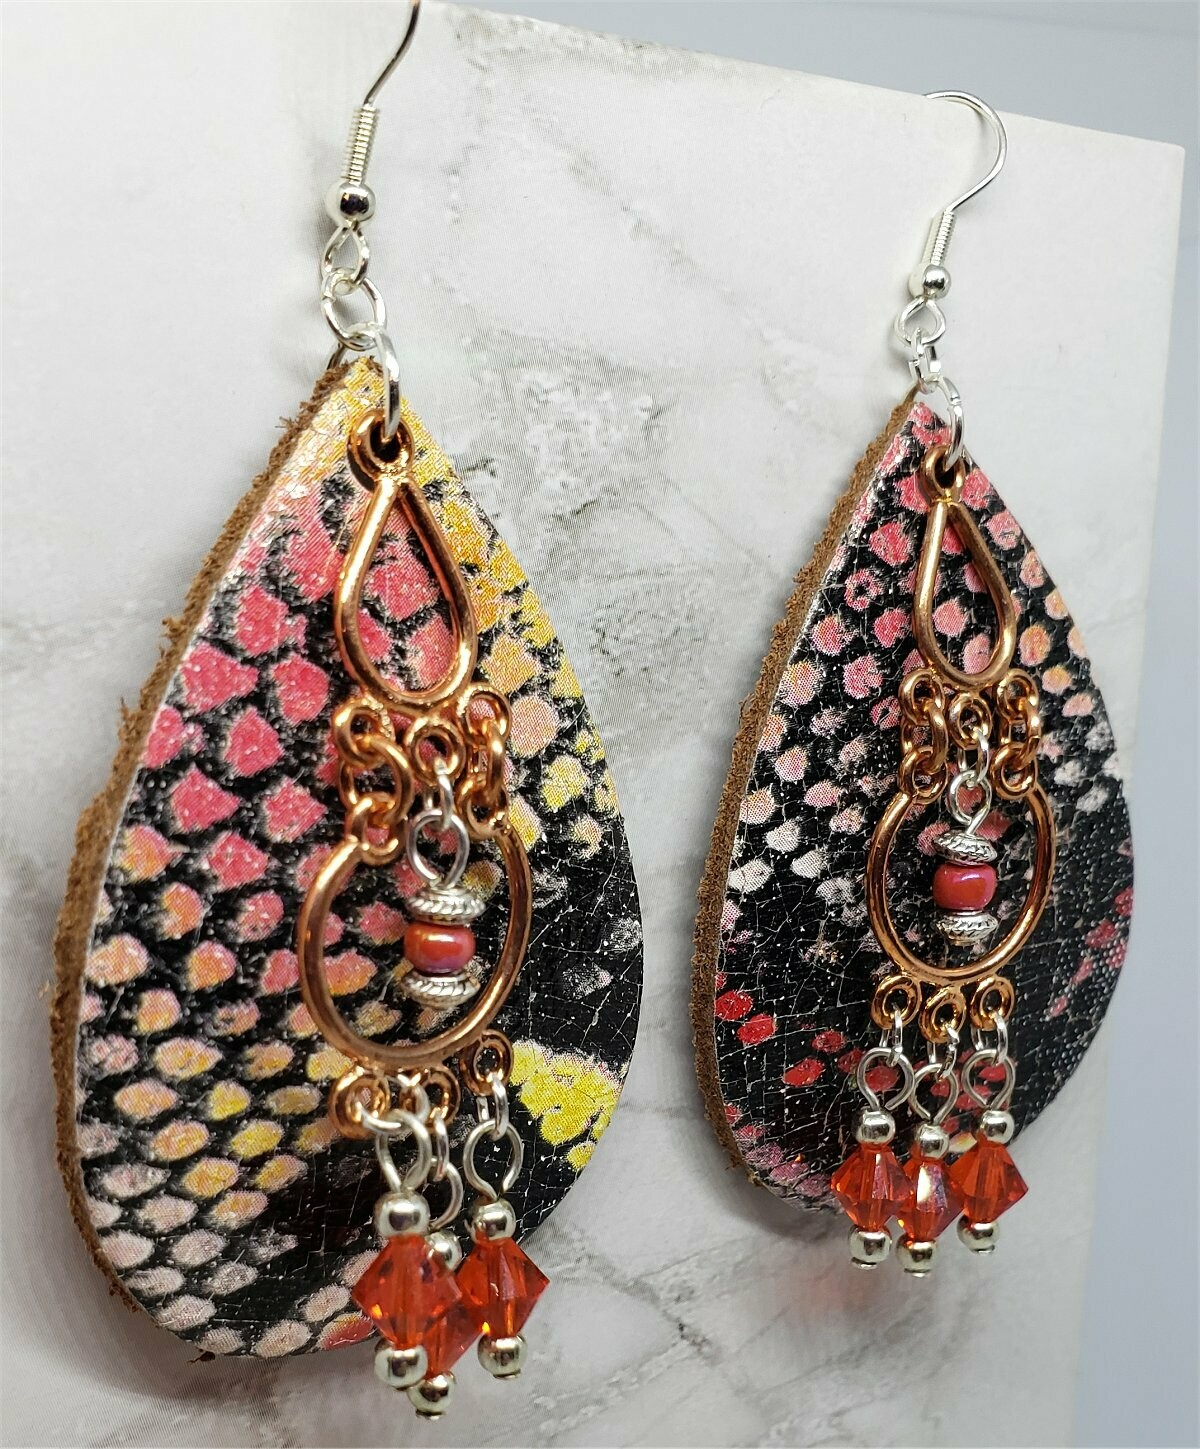 Colorful Snakeskin Real Leather Earrings with a Copper Chandelier Overlay and Swarovski Crystal Dangles